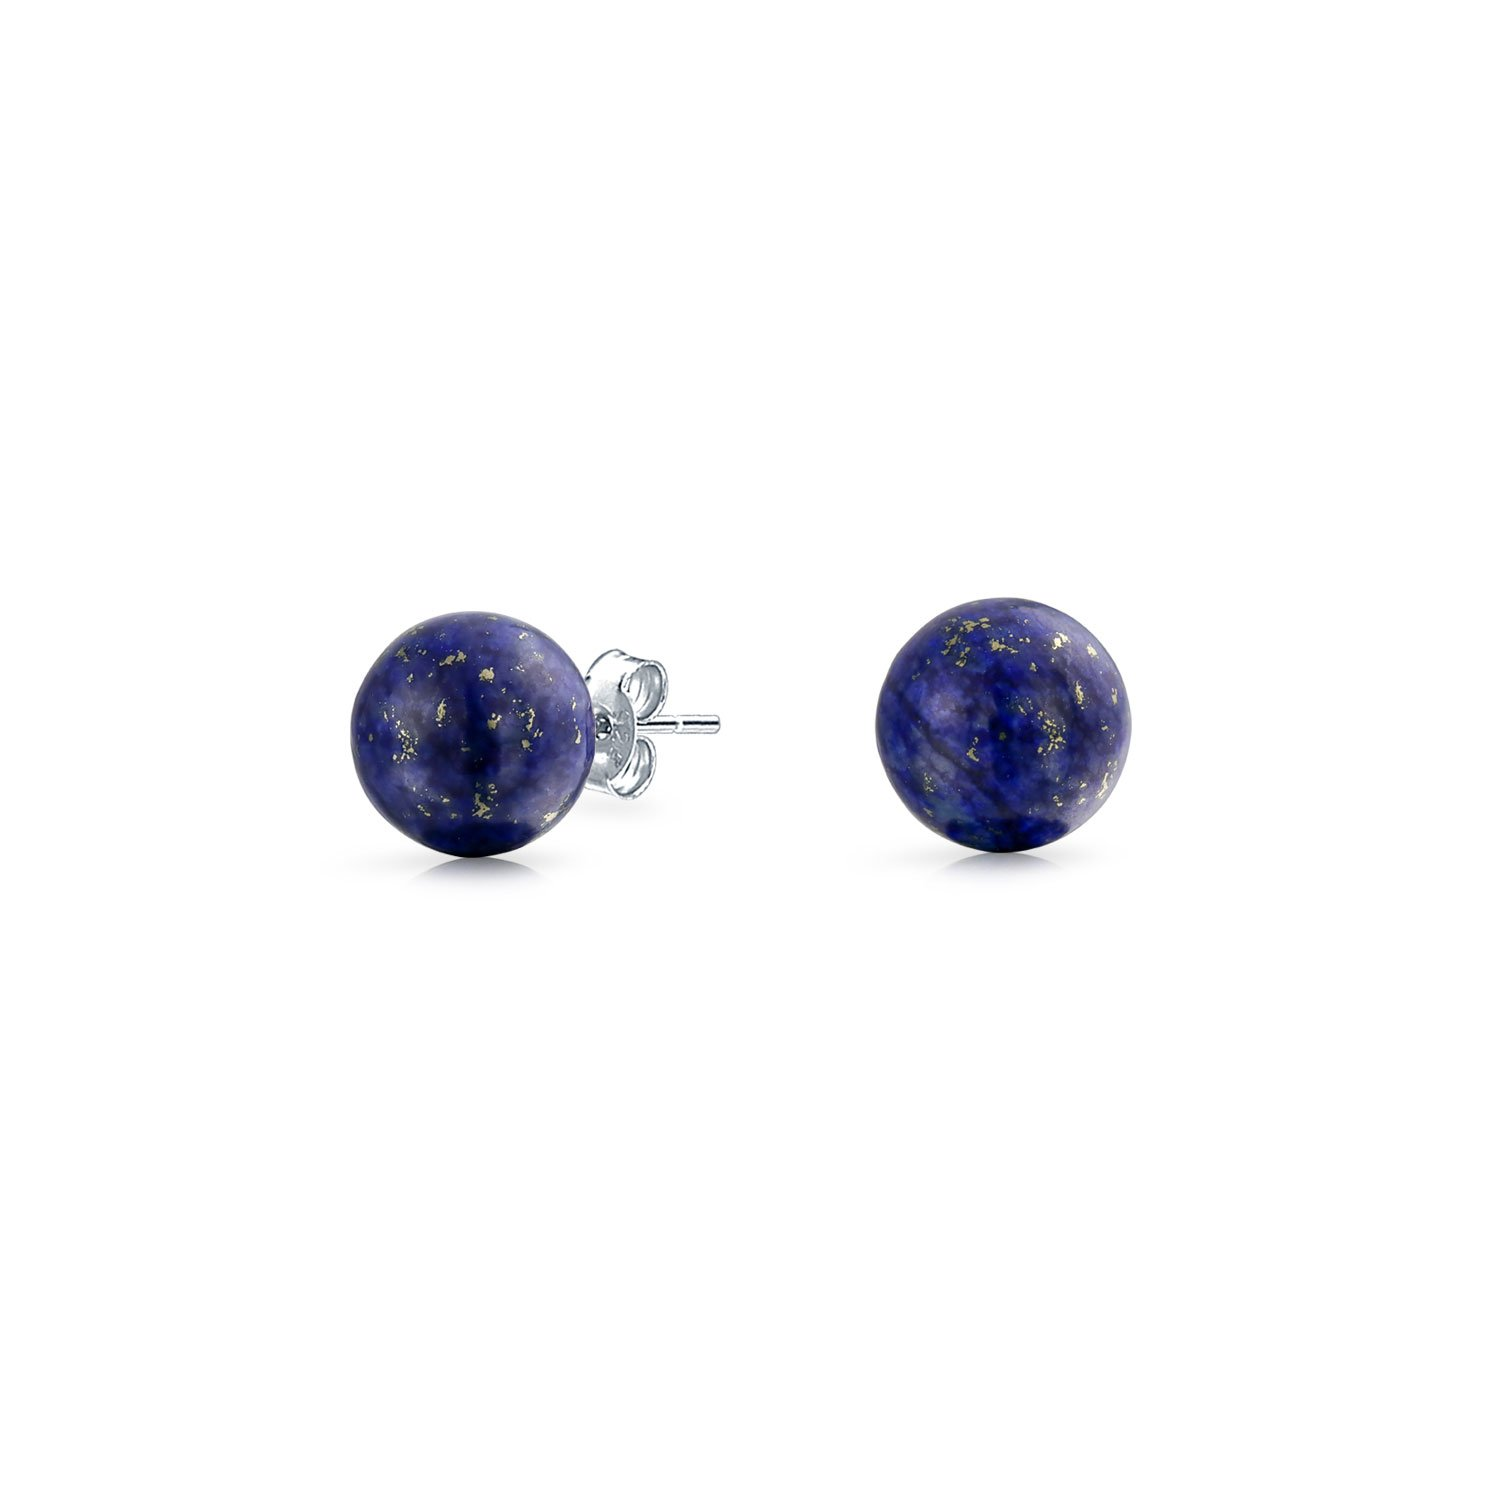 Bling Jewelry Silver Plated Dyed Lapis Gemstone Ball Stud Earrings 6mm CB-OV0001-6mm